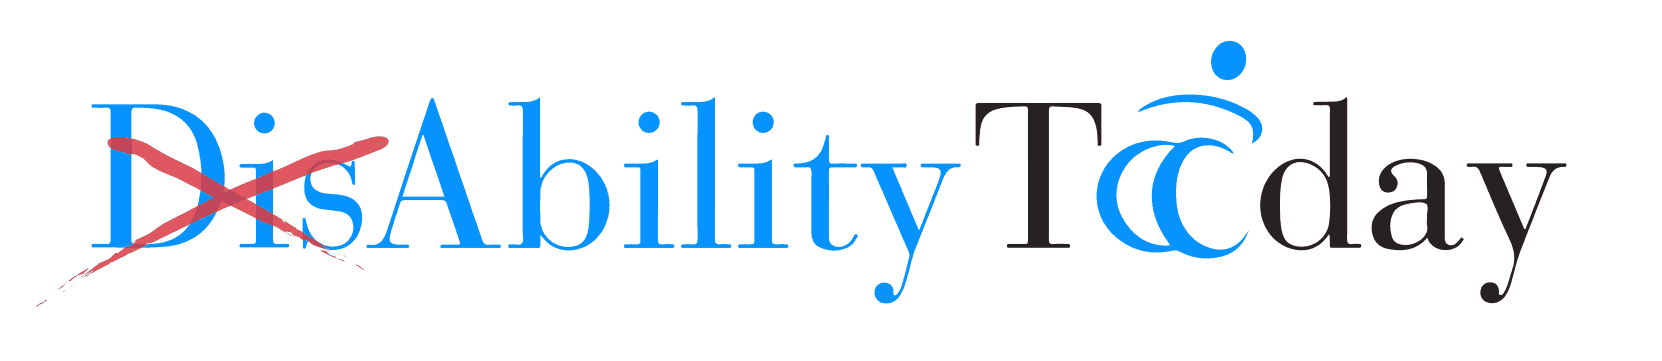 Ability Today providing news & information on products services & organisations